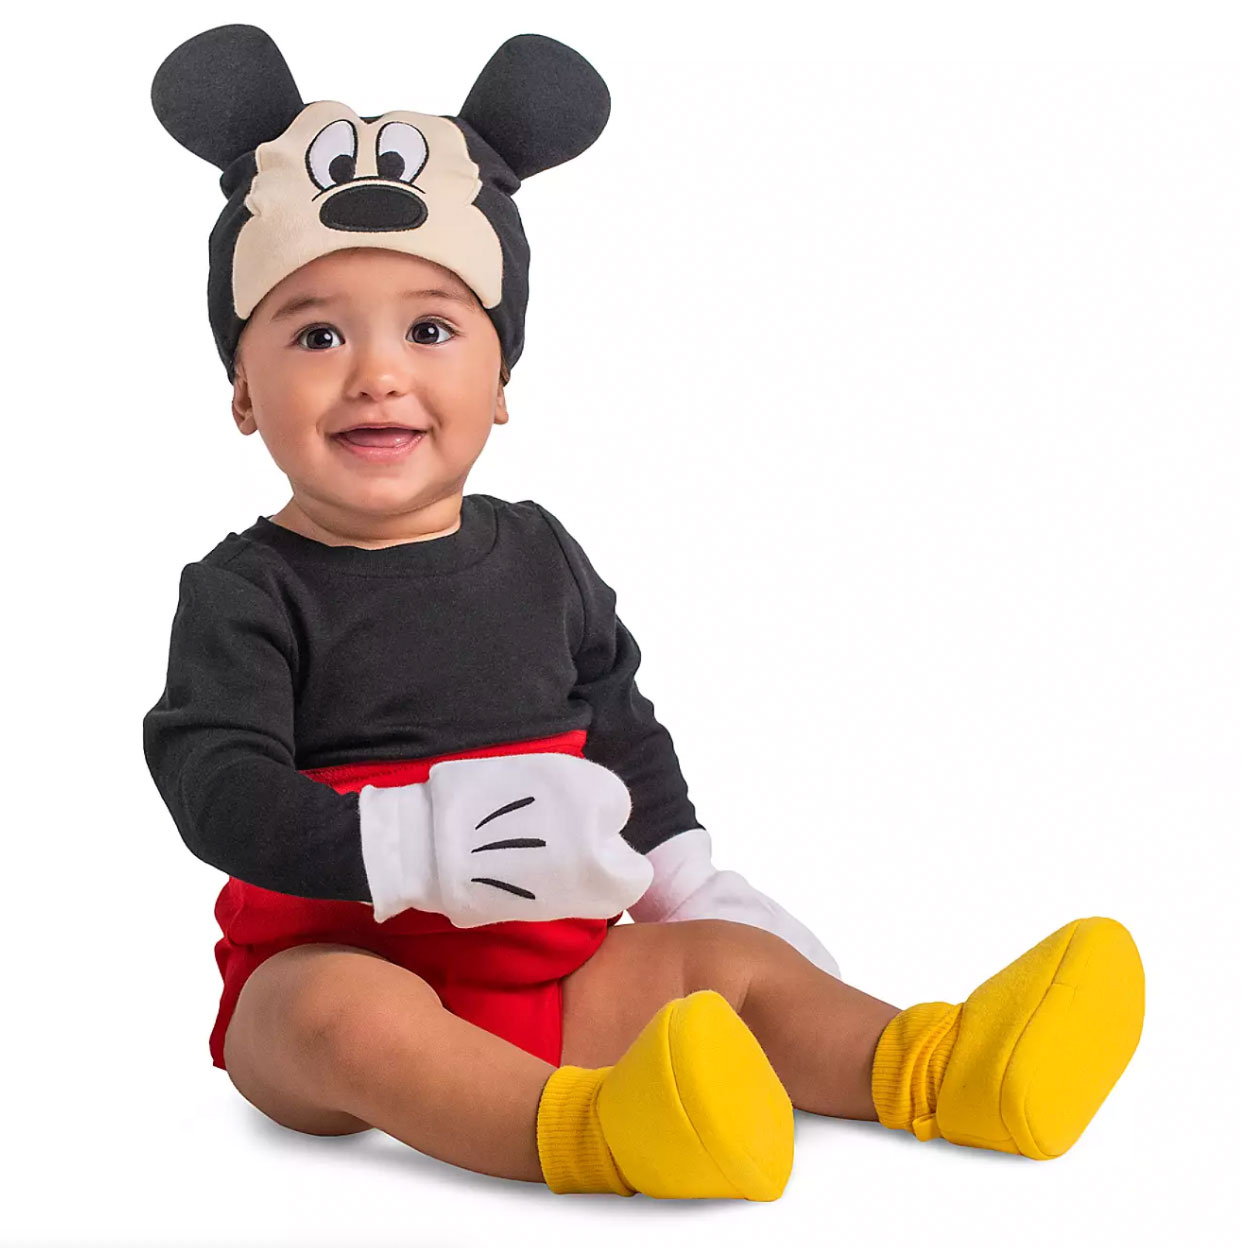 Mickey Mouse Costume Bodysuit for Baby